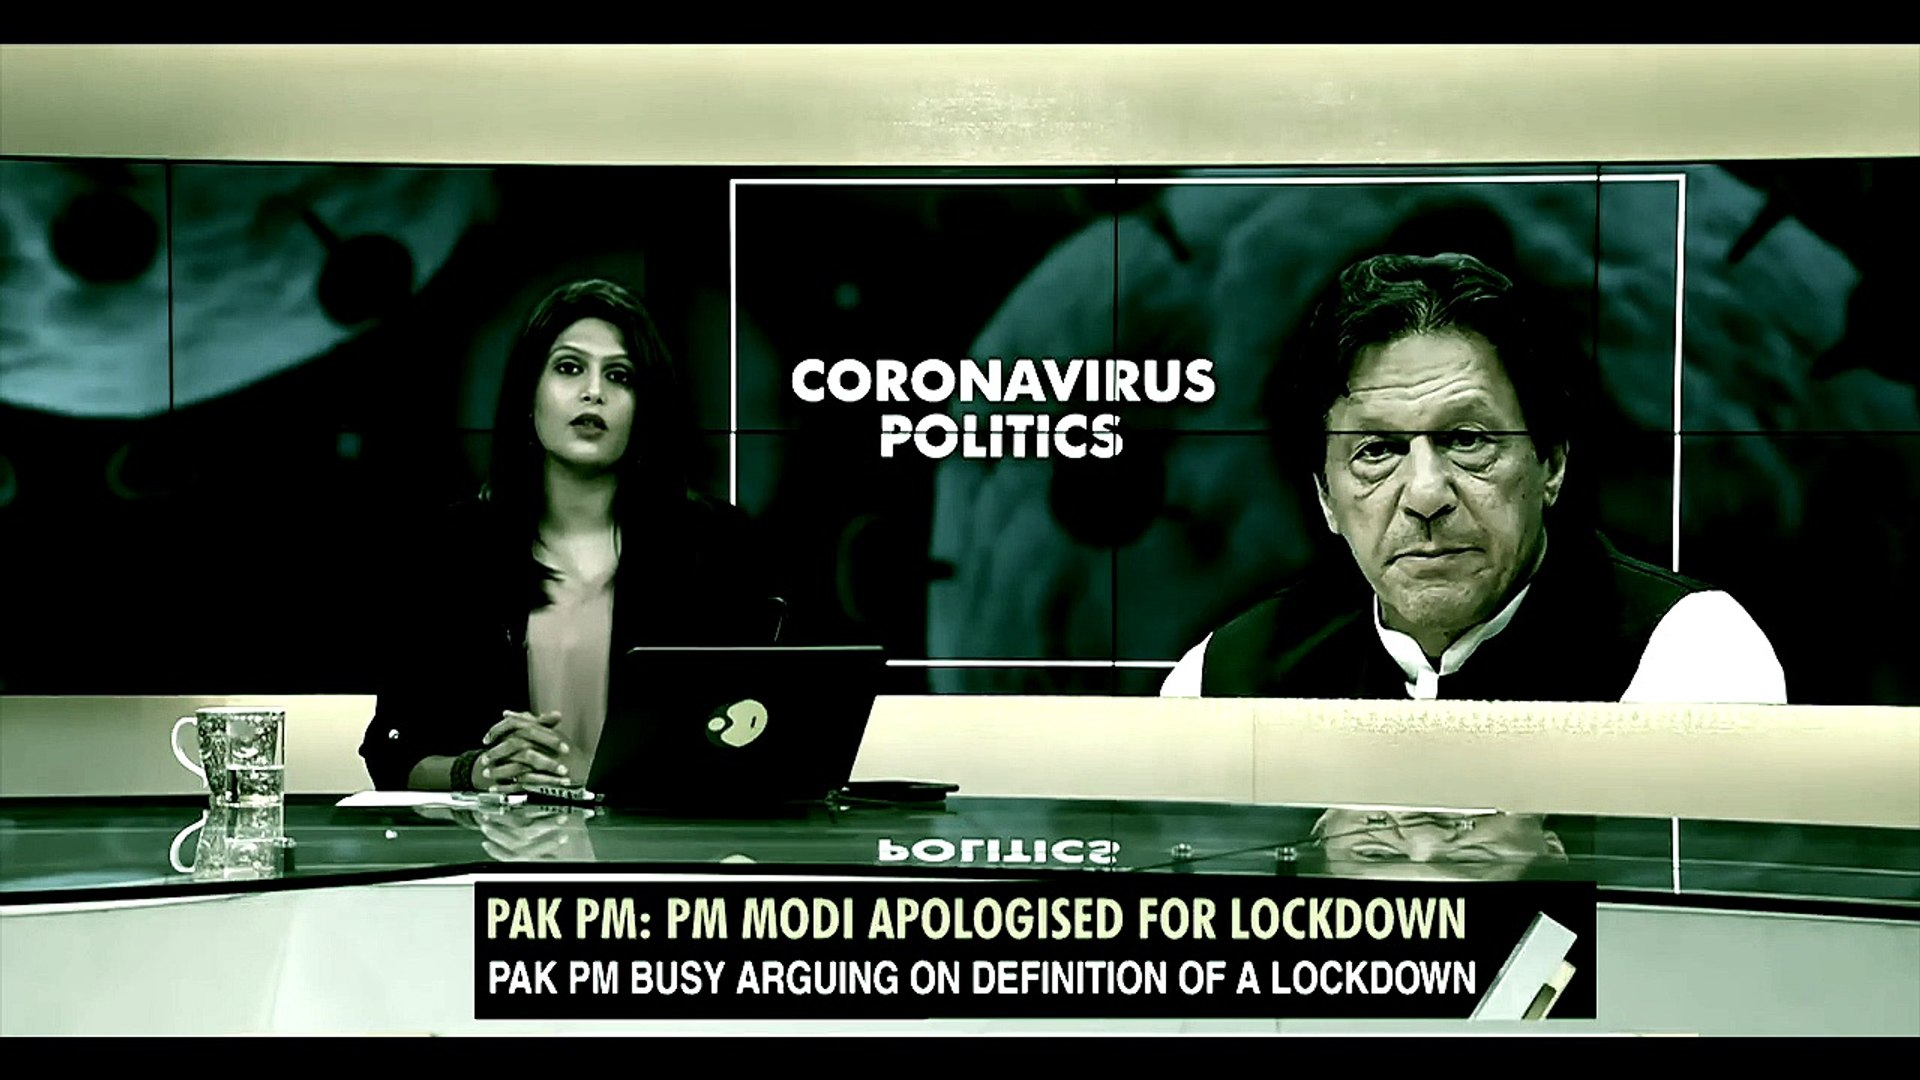 Pakistan Head Imran Khan Politics Corona Virus